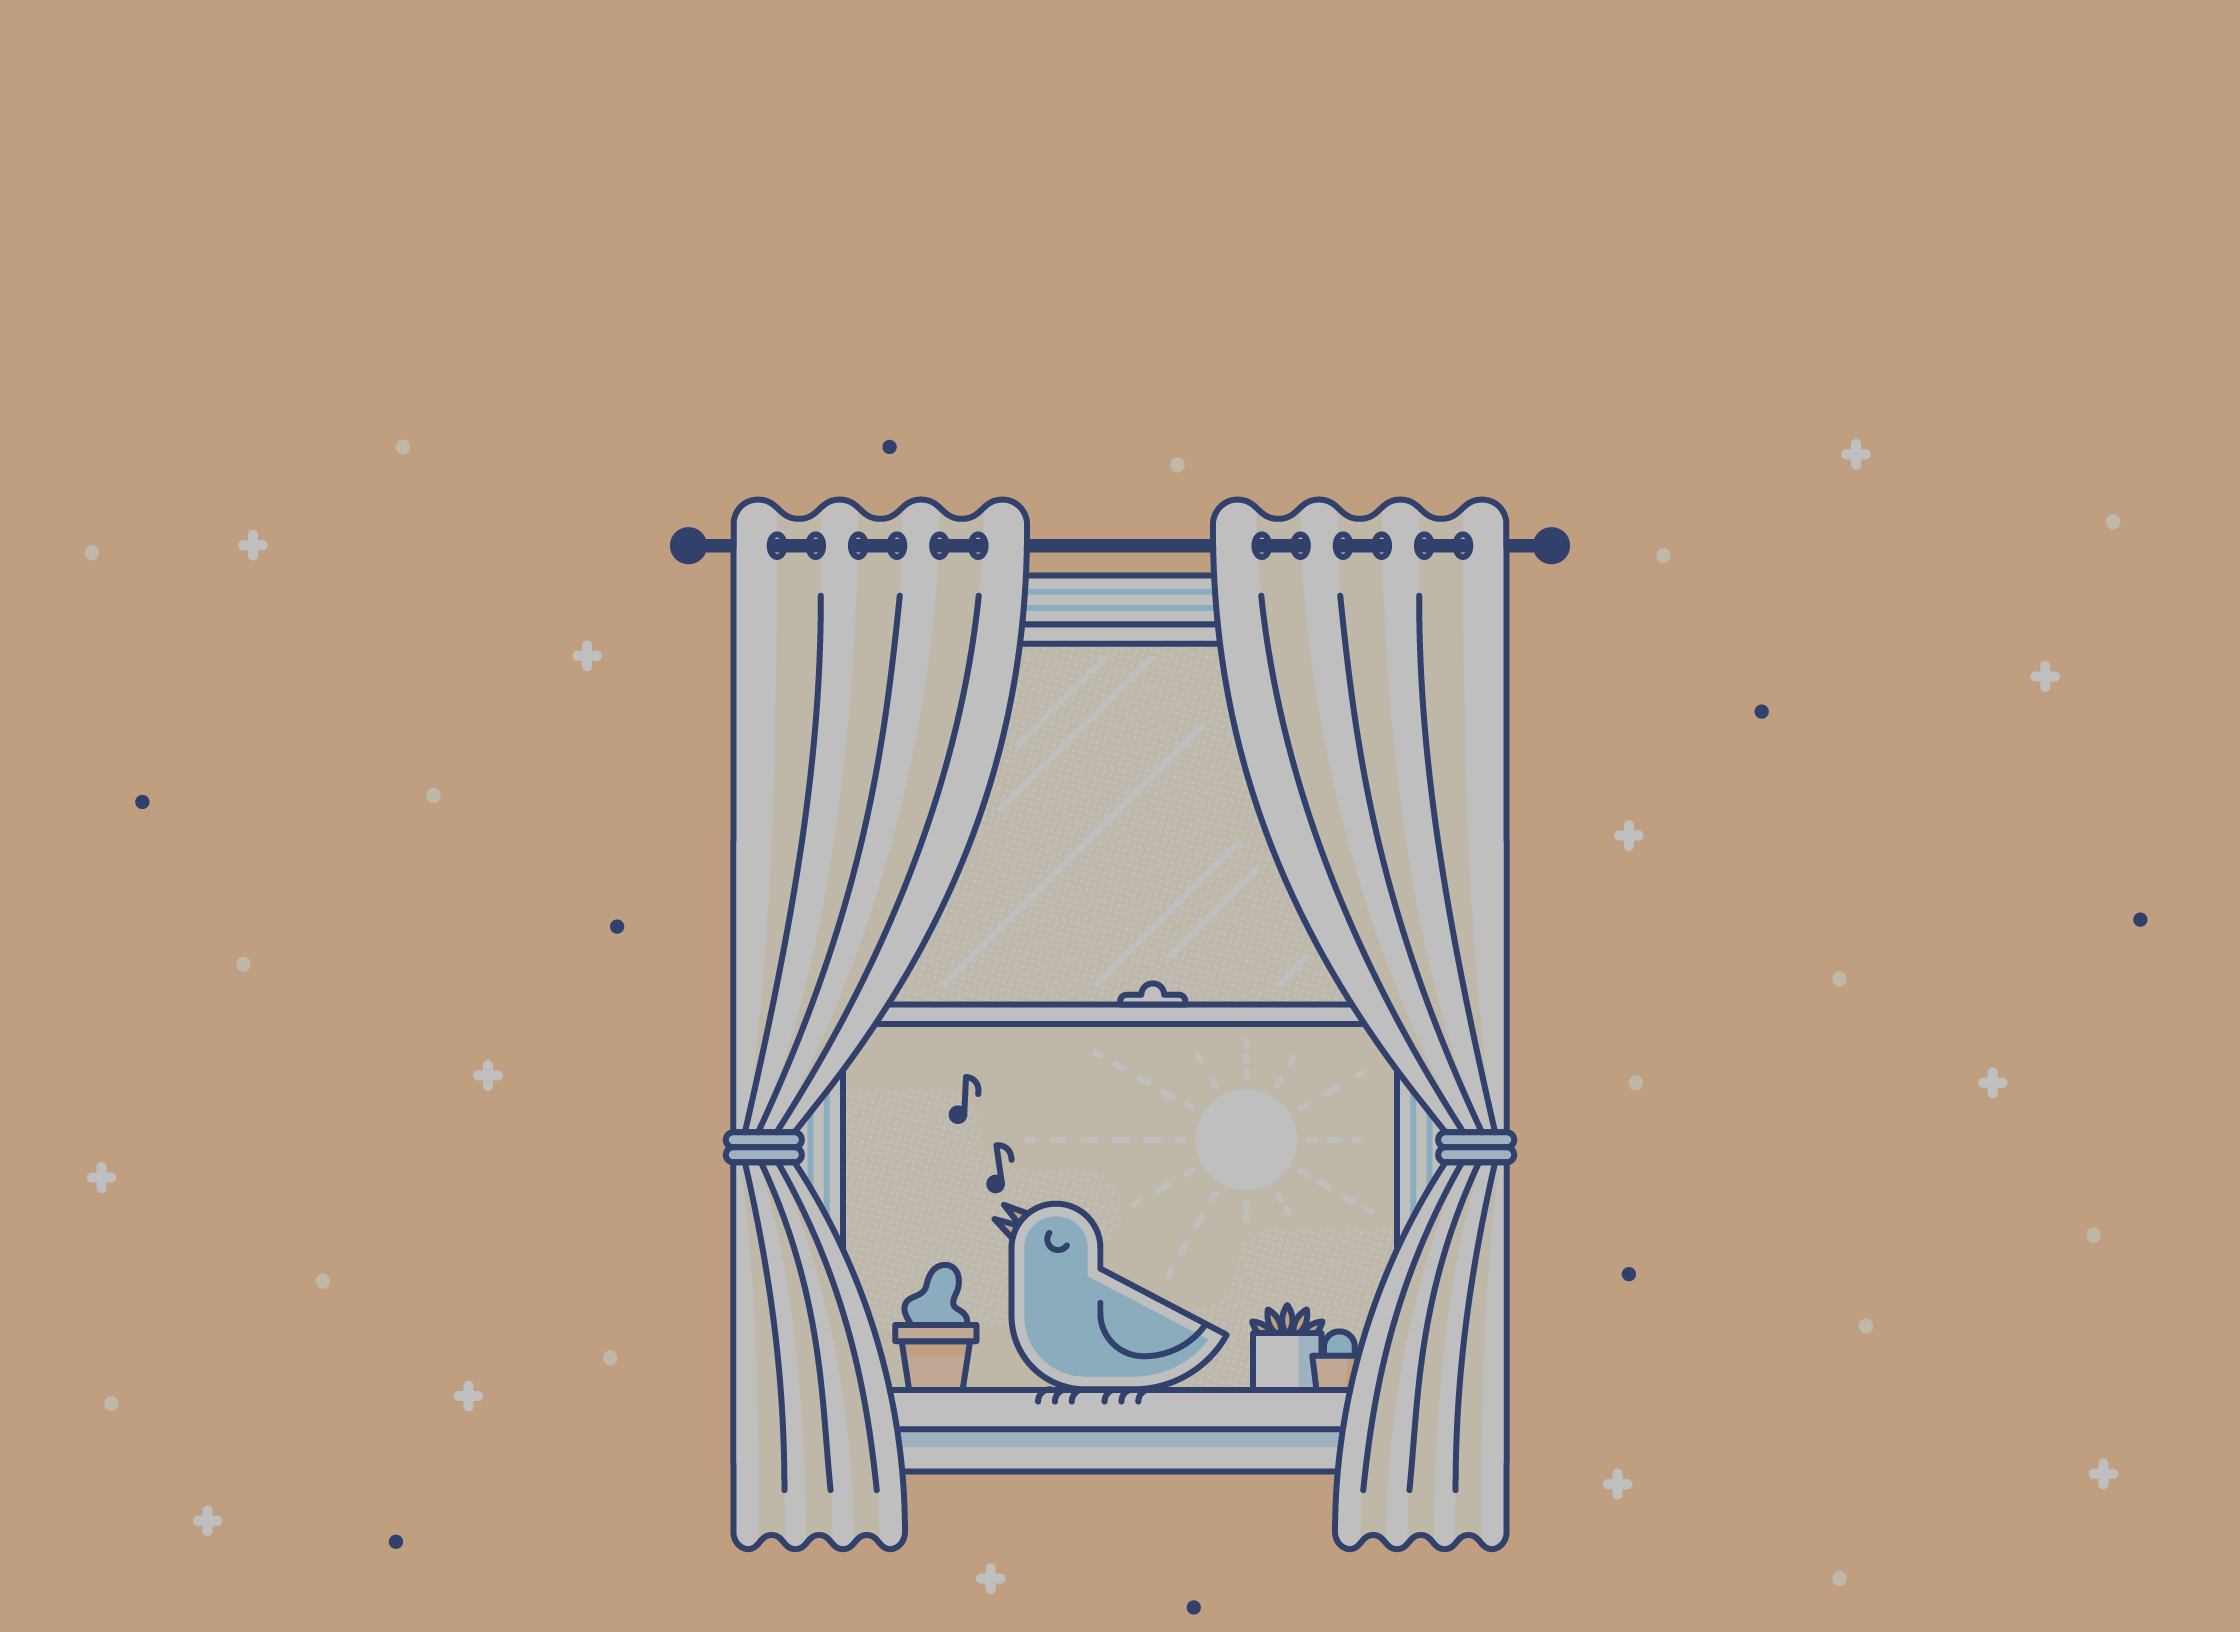 illustration of a bird singing out of a window